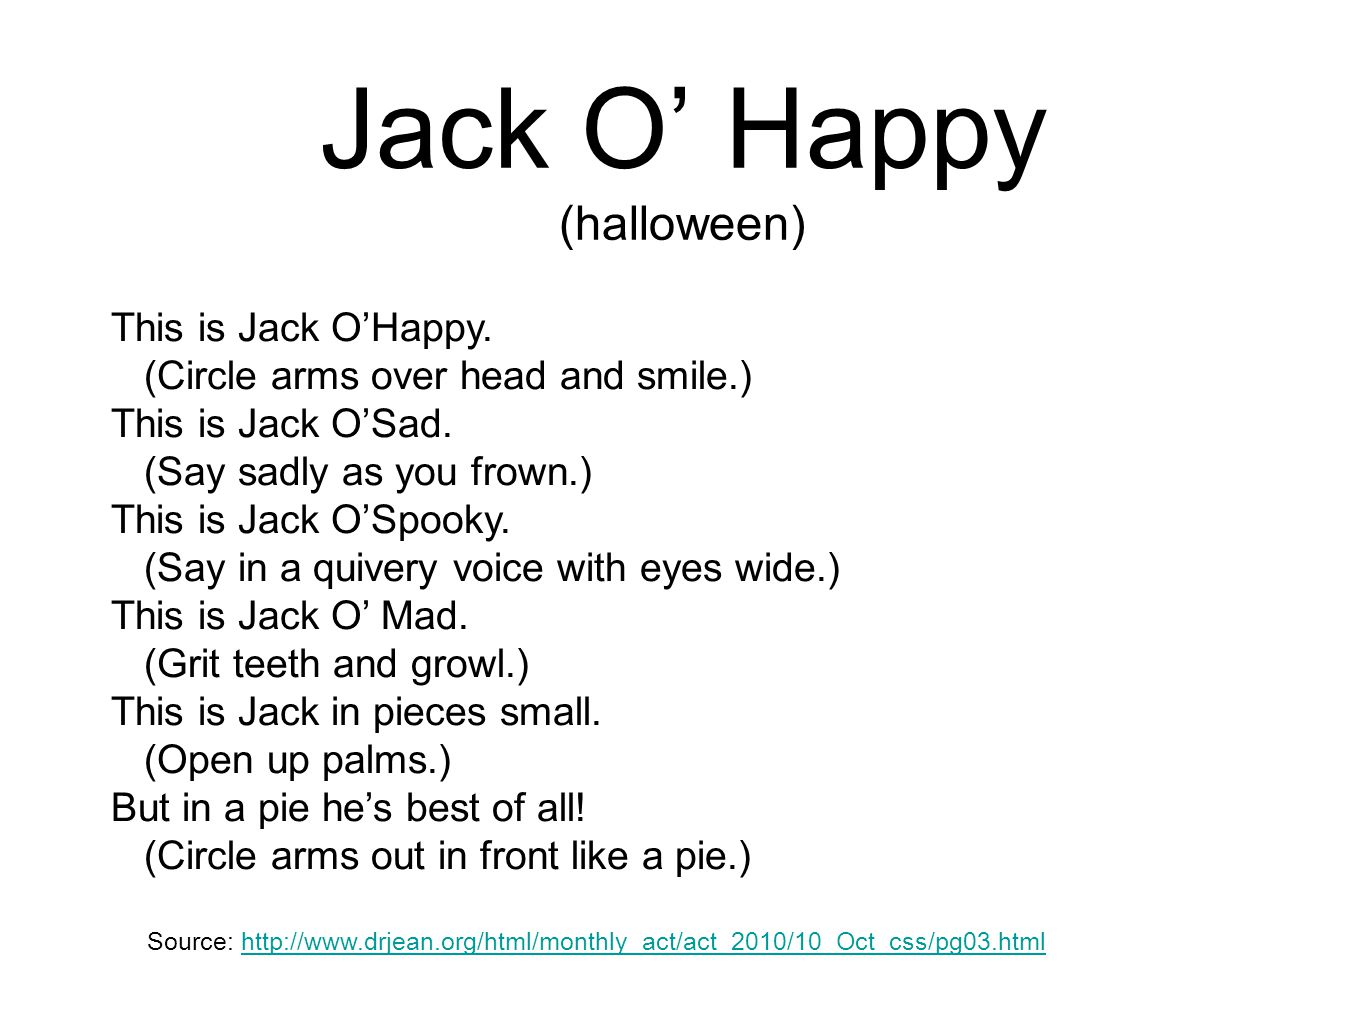 Jack O' Happy (halloween) This is Jack O'Happy. (Circle arms over head and smile.) This is Jack O'Sad. (Say sadly as you frown.) This is Jack O'Spooky